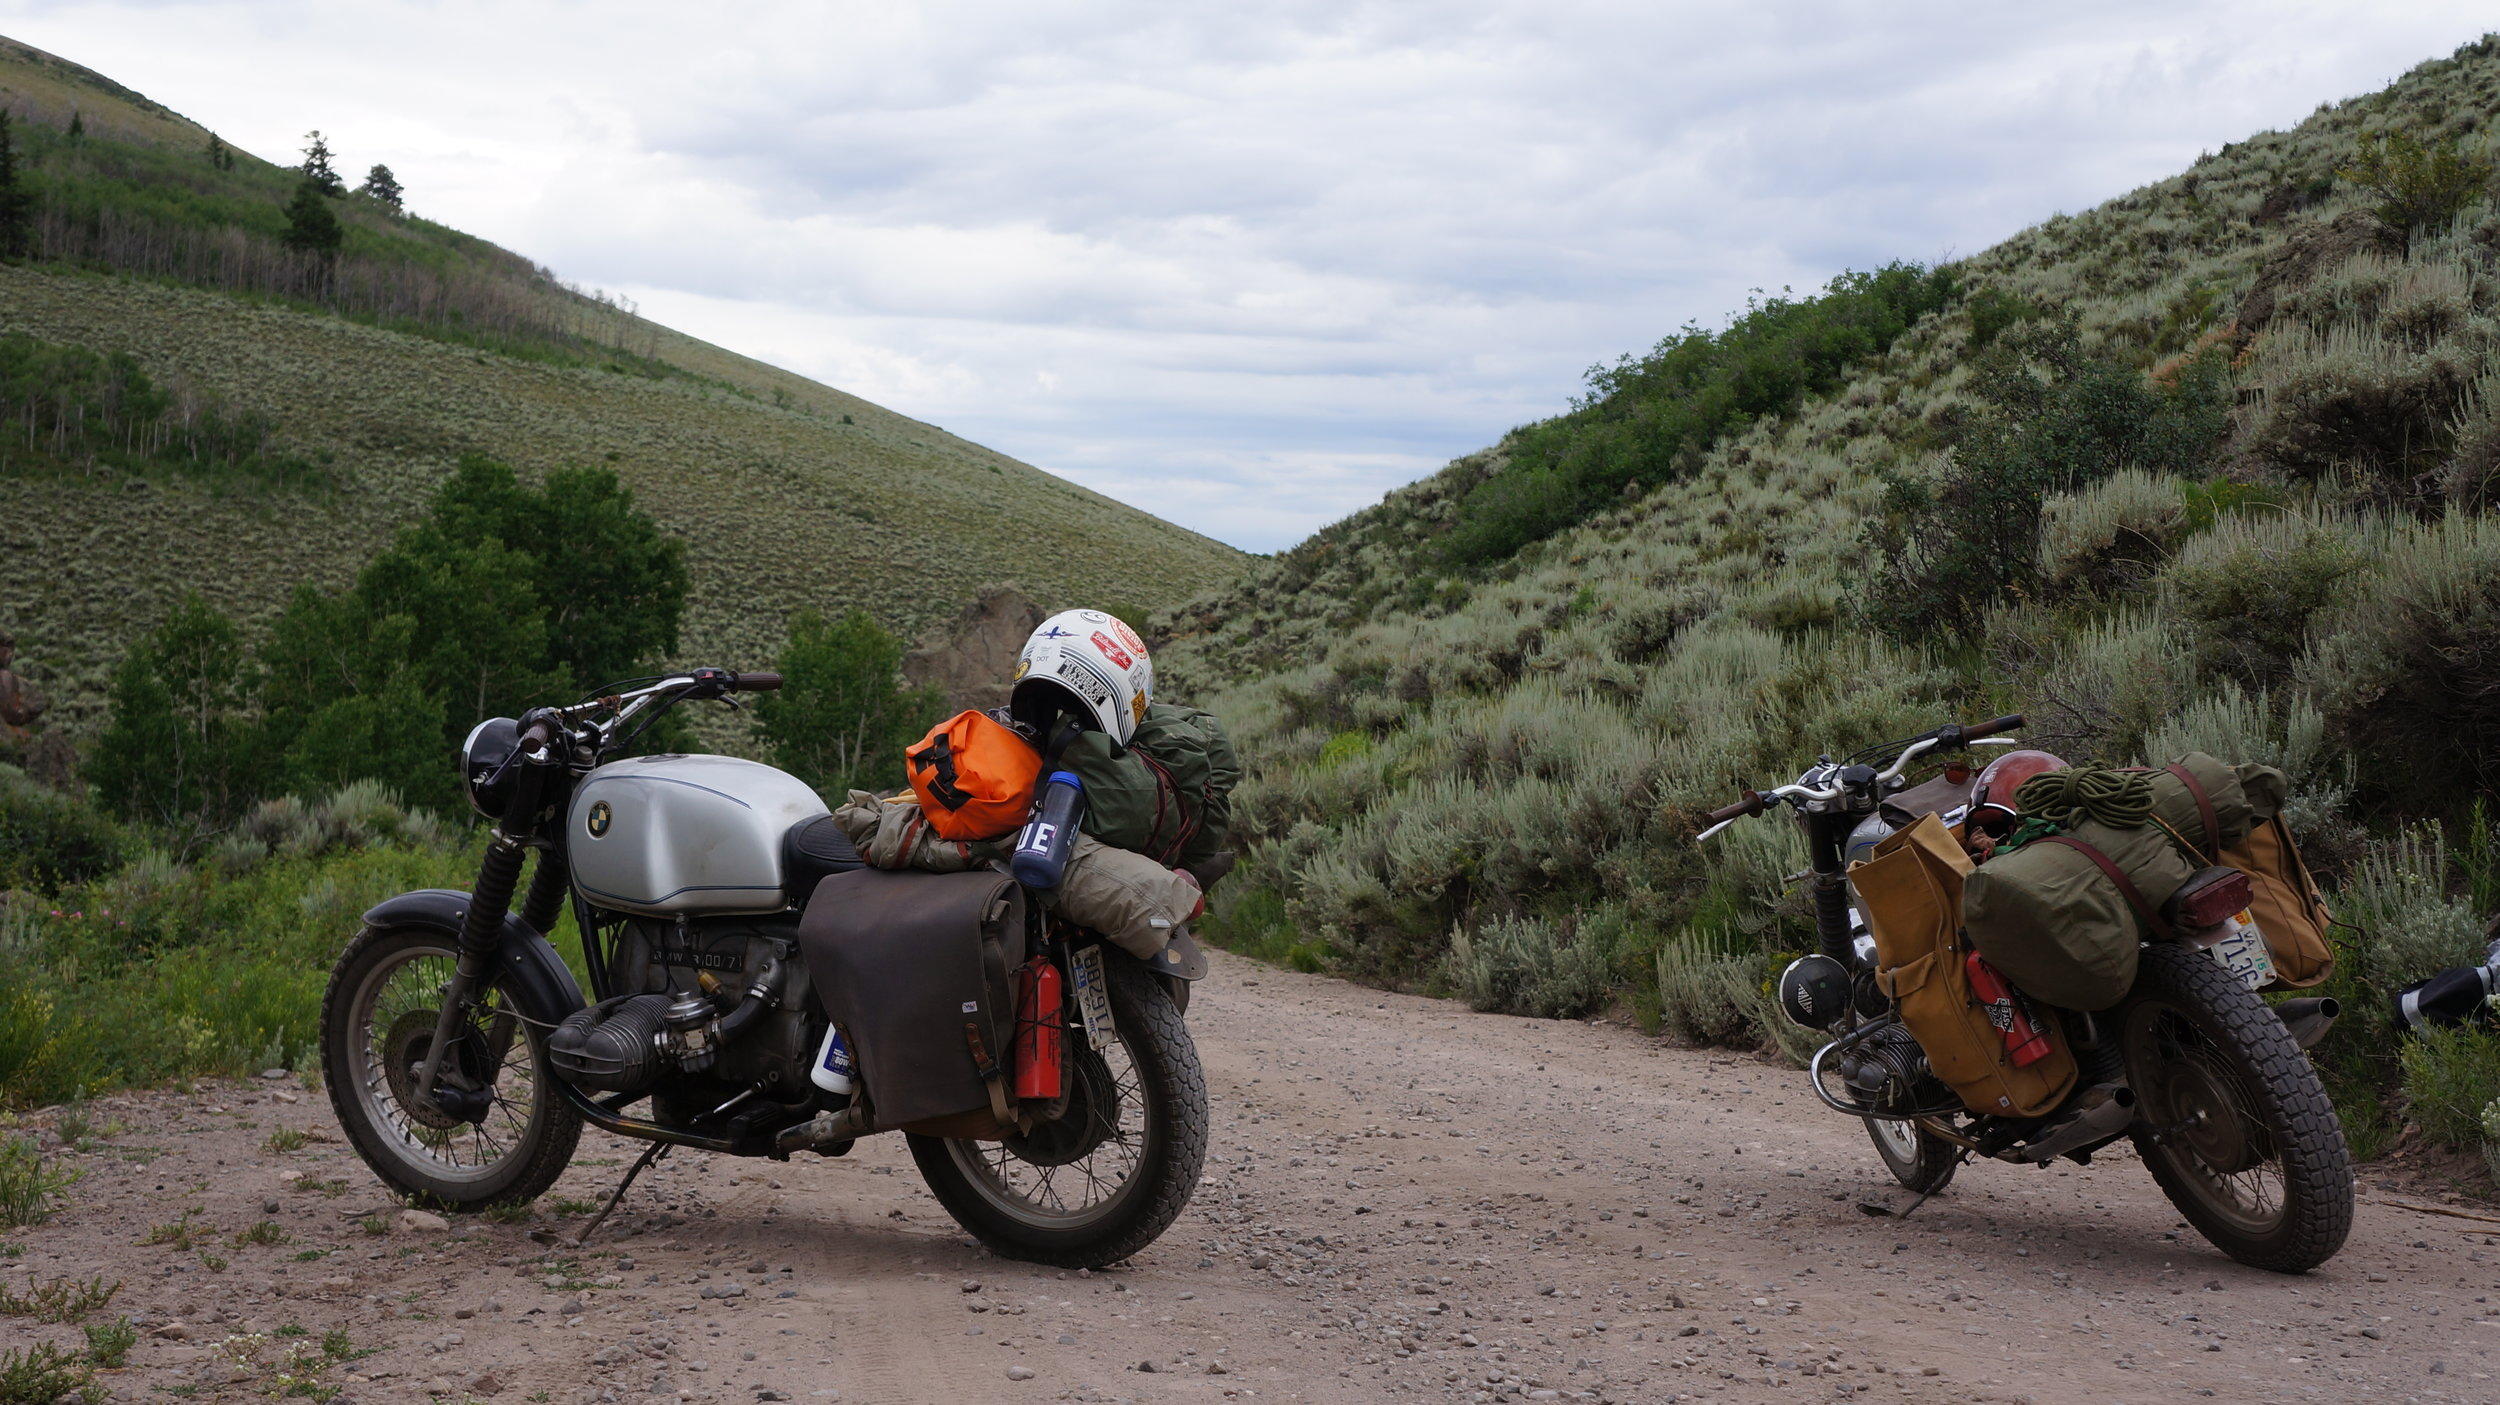 Exploring some dirt roads near the Blue Mesa resevoir in CO.